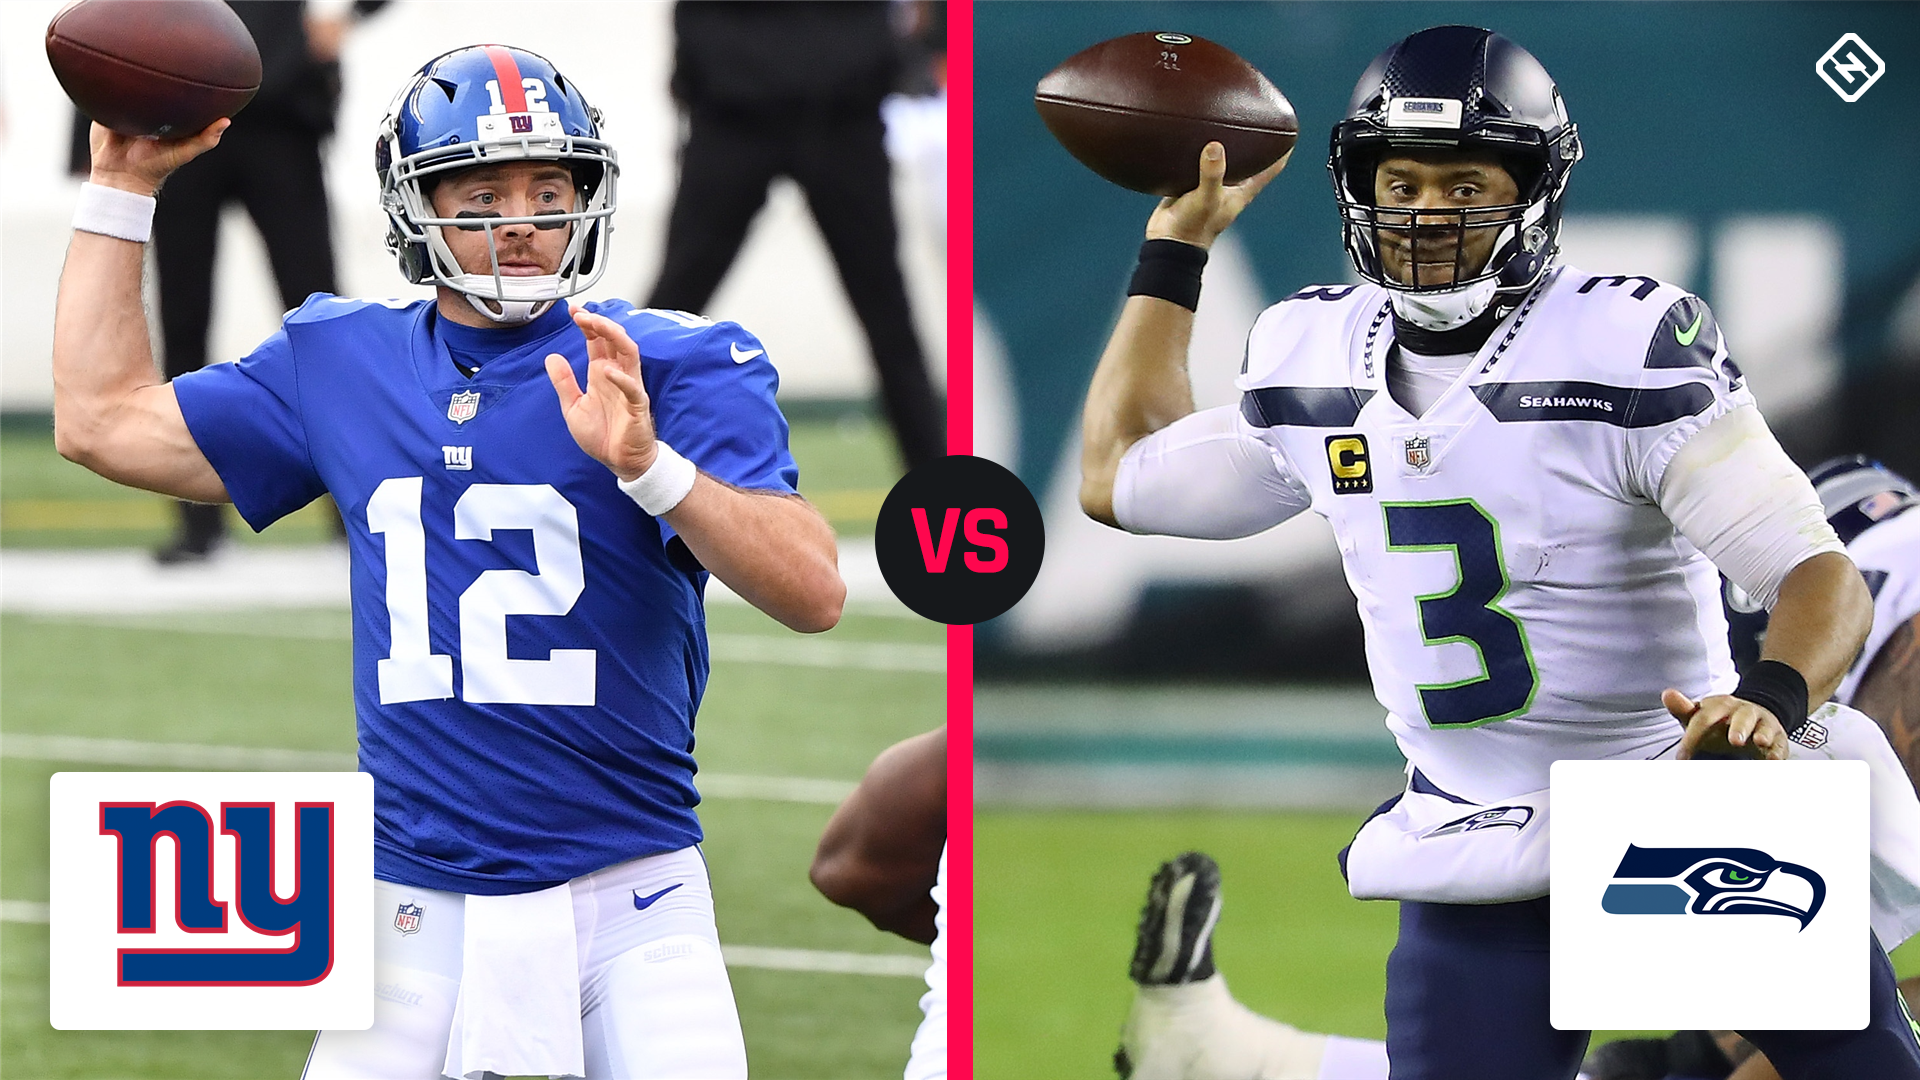 What channel is Seahawks vs. Giants on today? Time, TV schedule for Week 13 NFL game